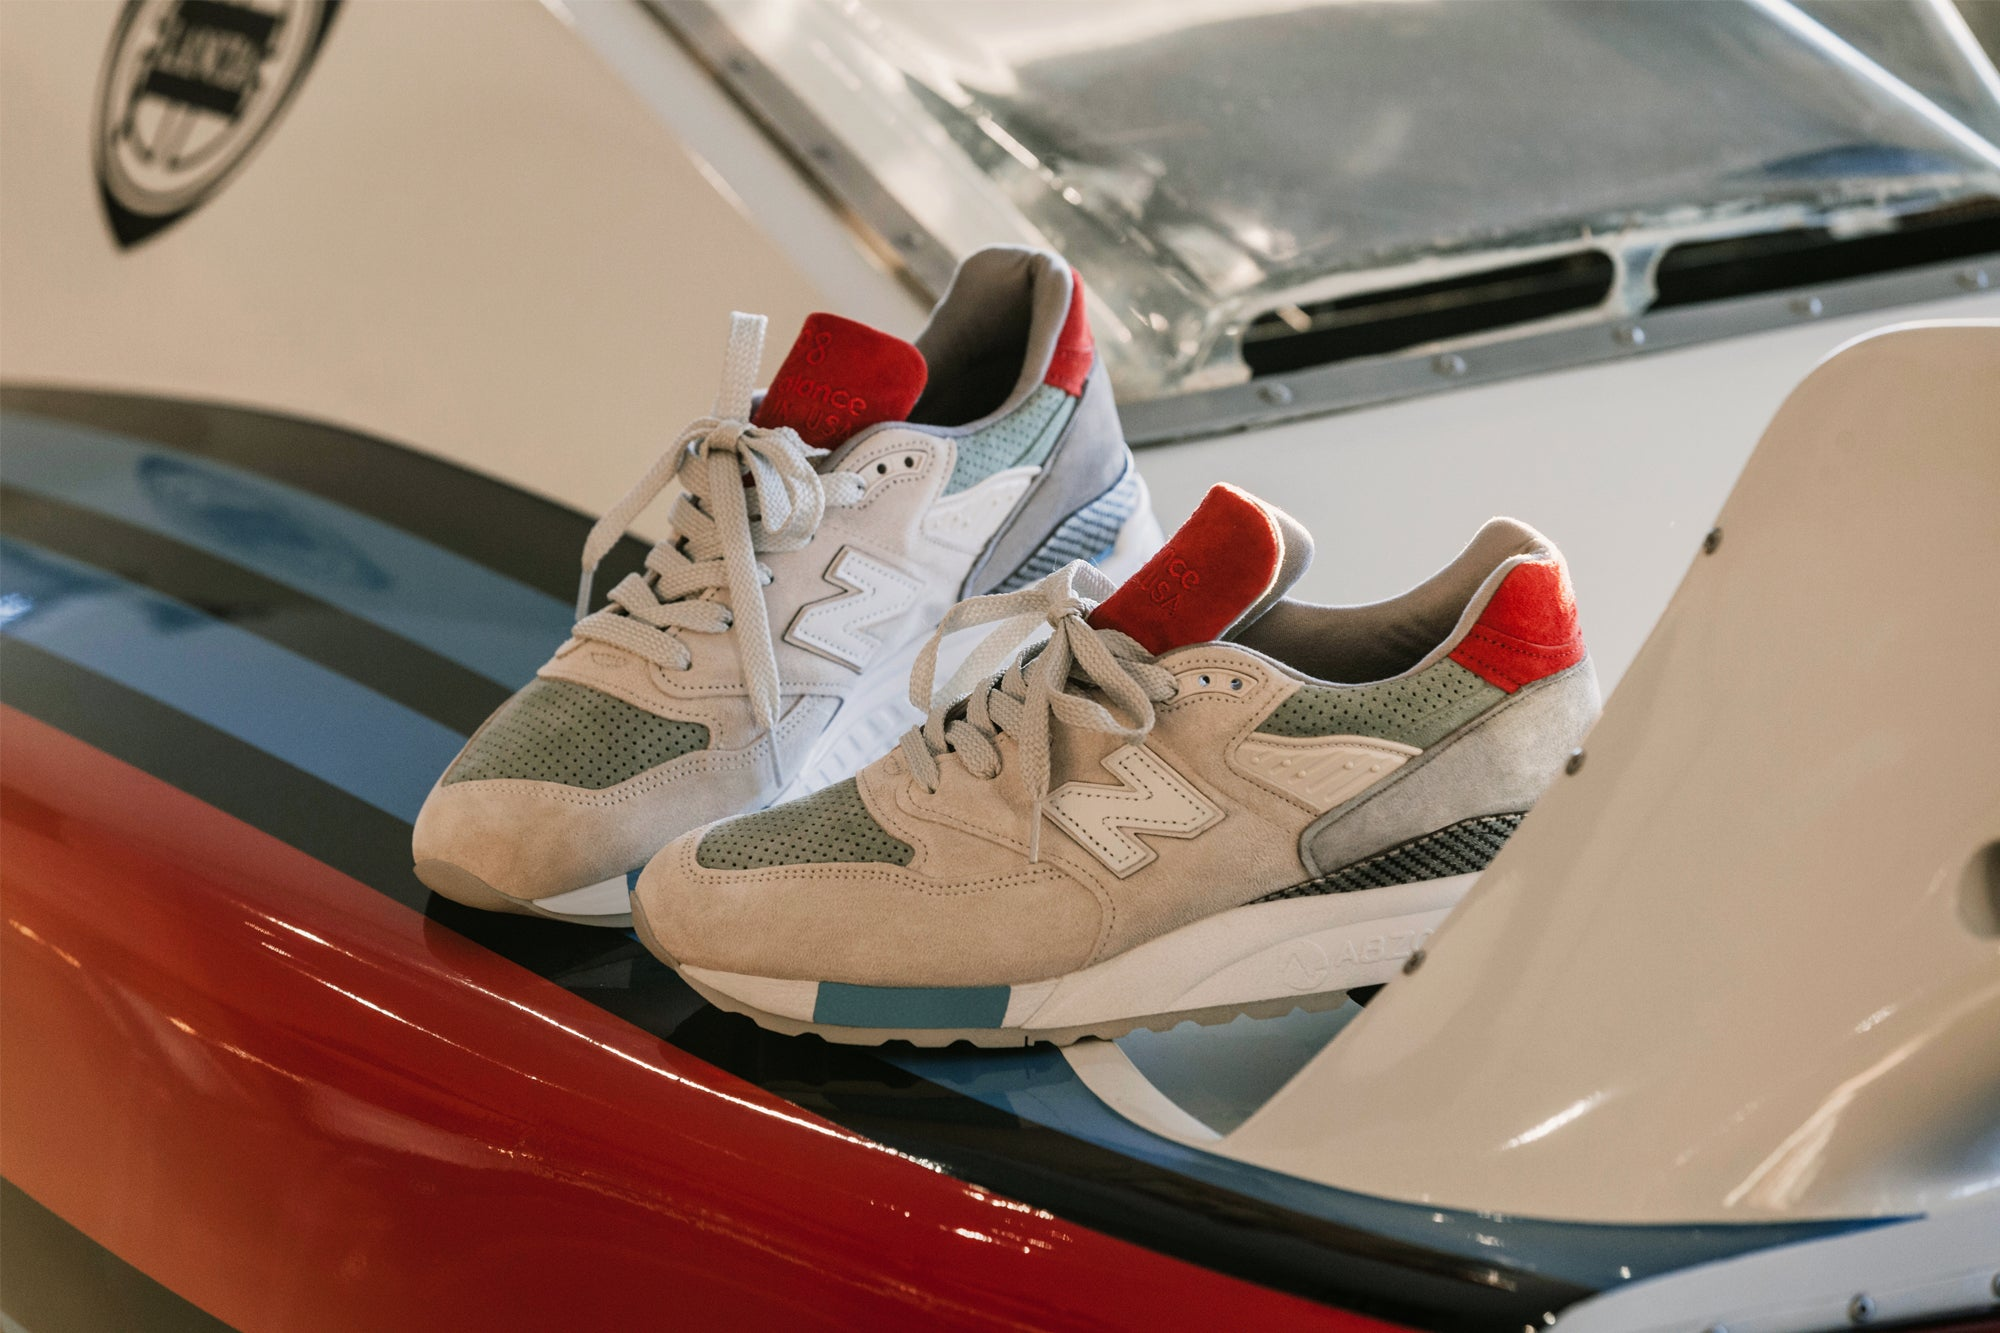 328323d1191b1a The Grand Tourer  Concepts Journey With New Balance